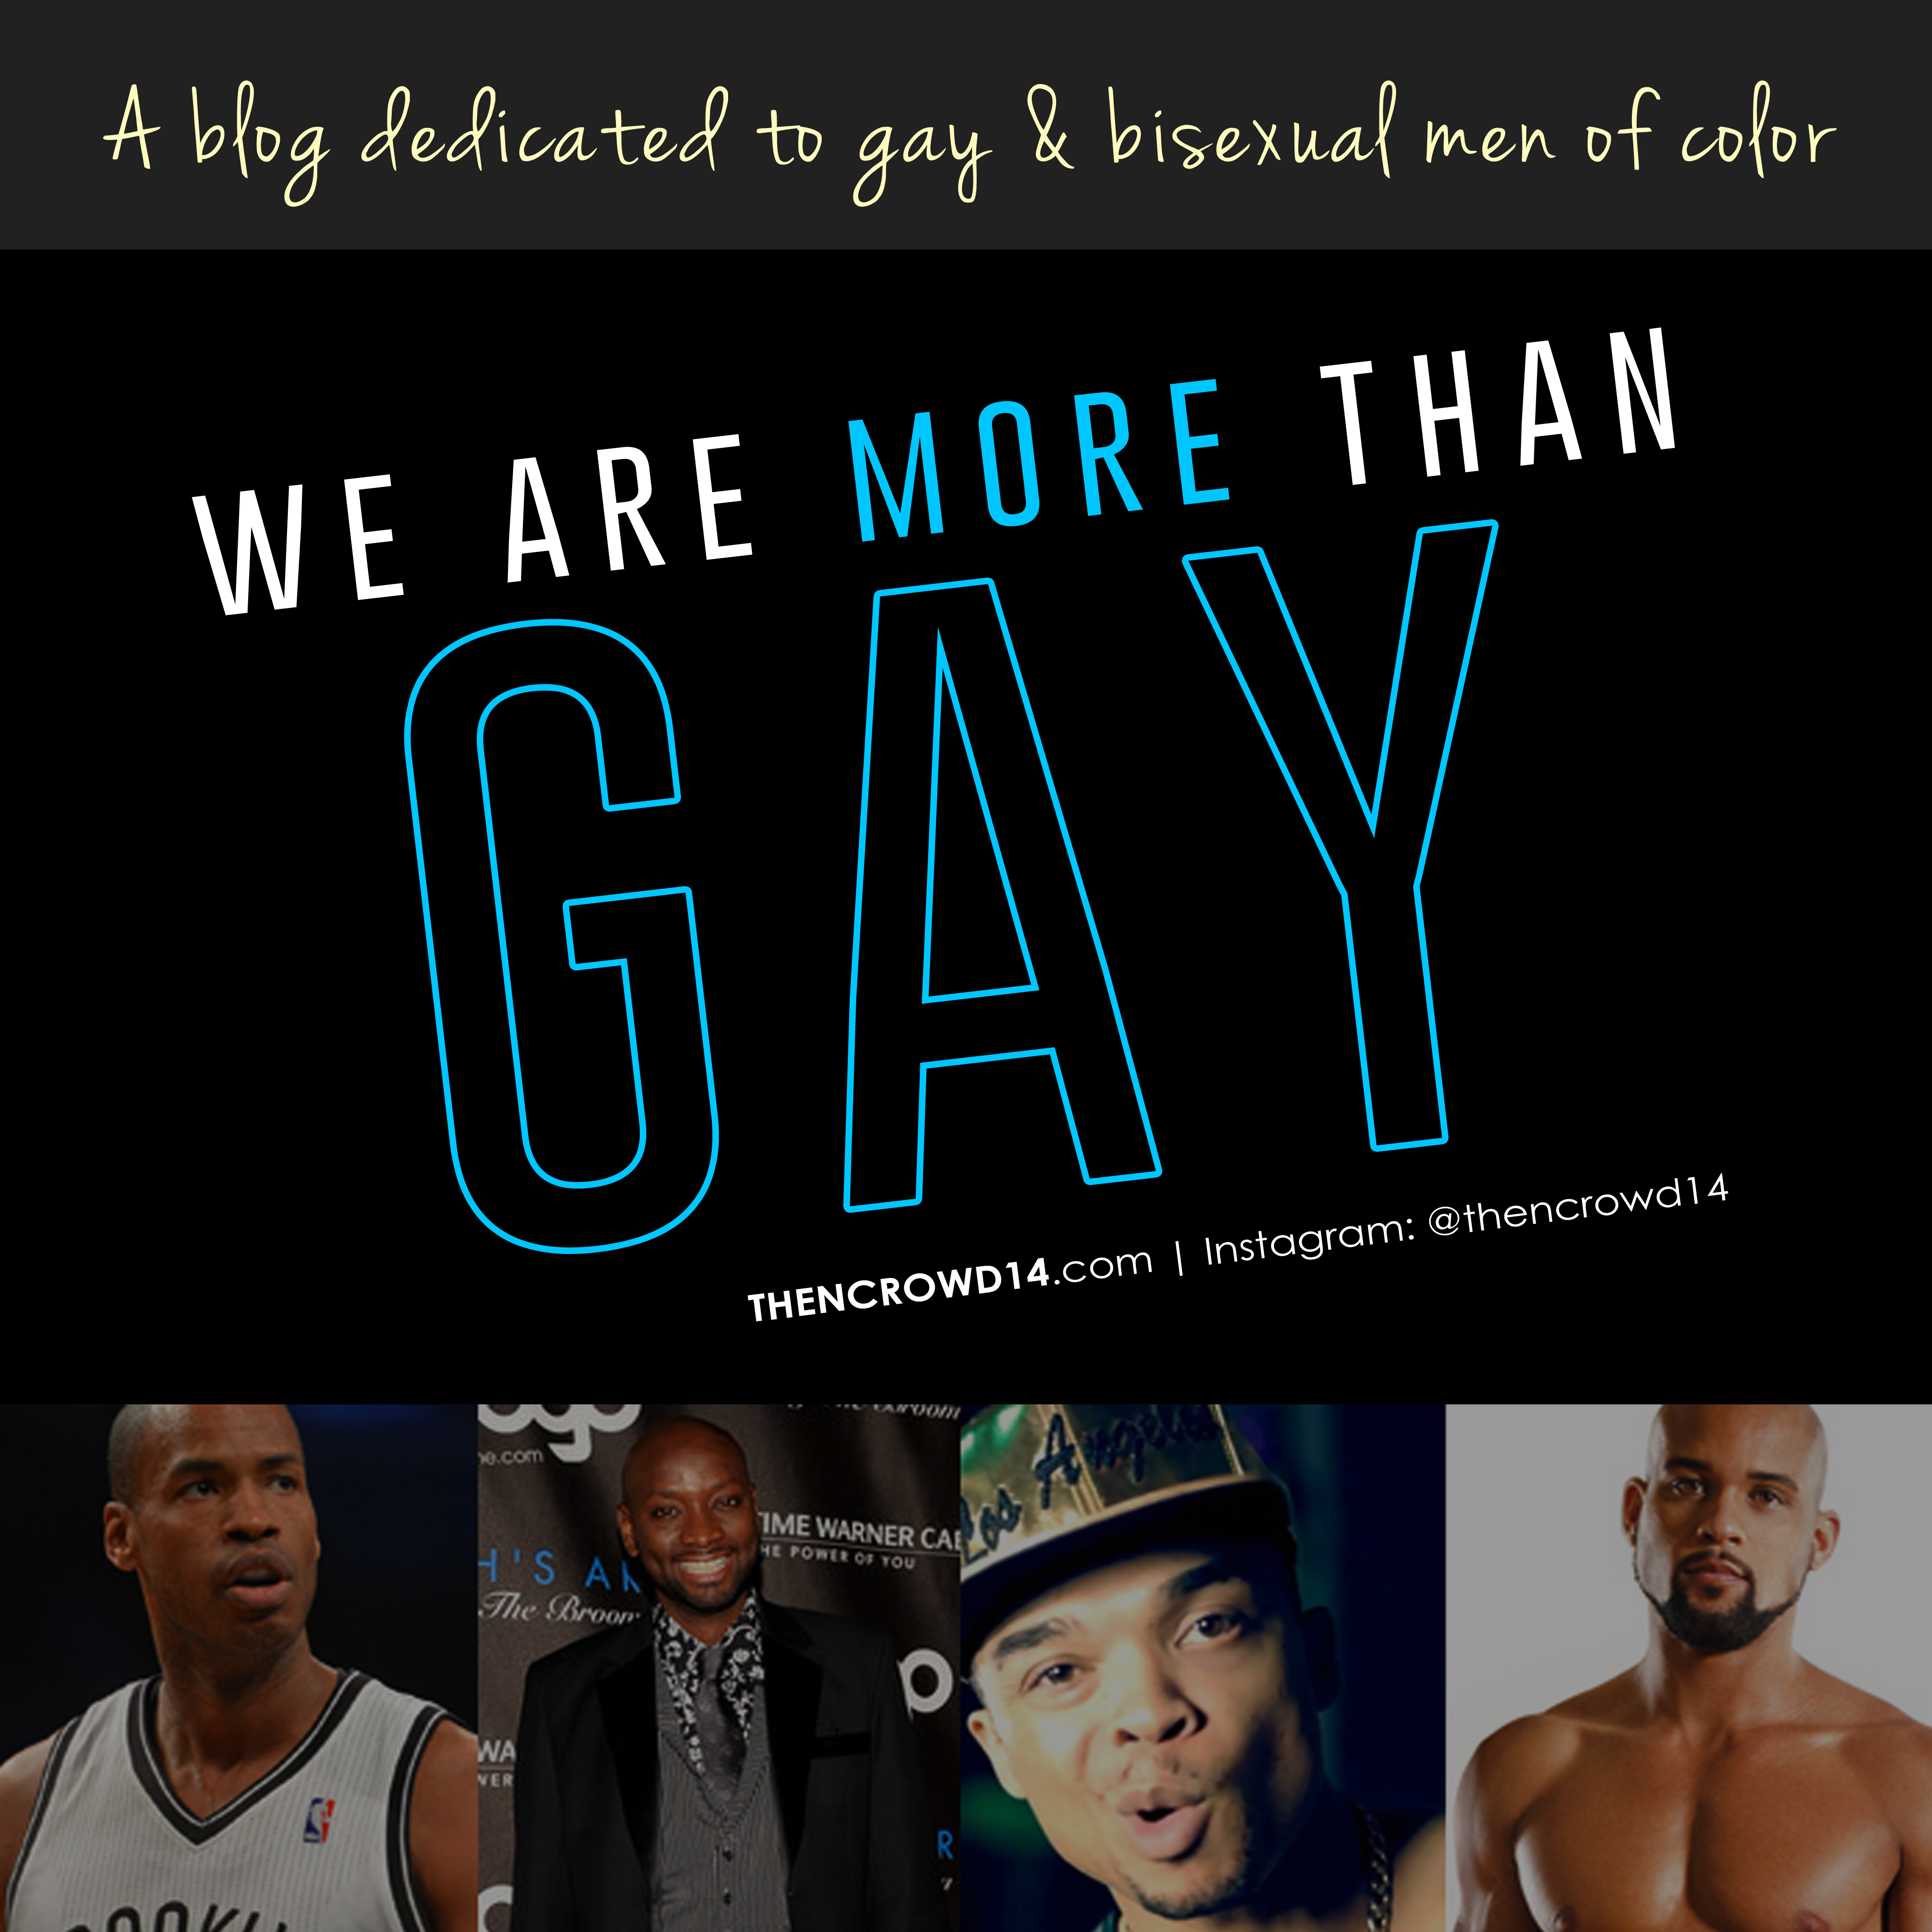 More Than Gay